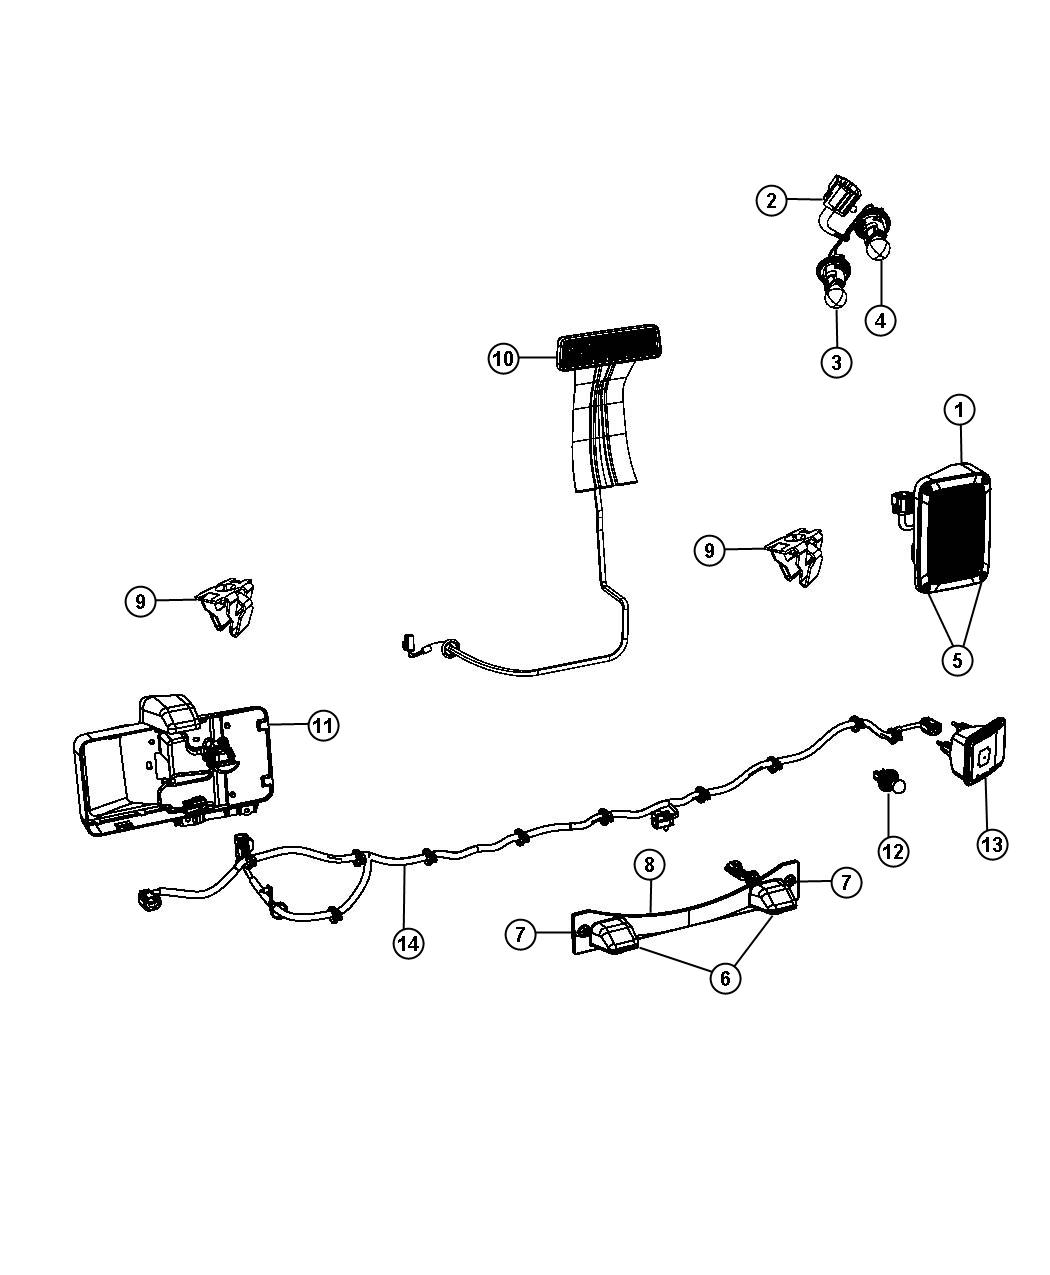 Jeep Wrangler Wiring. Tail lamp, taillamp. Export, left